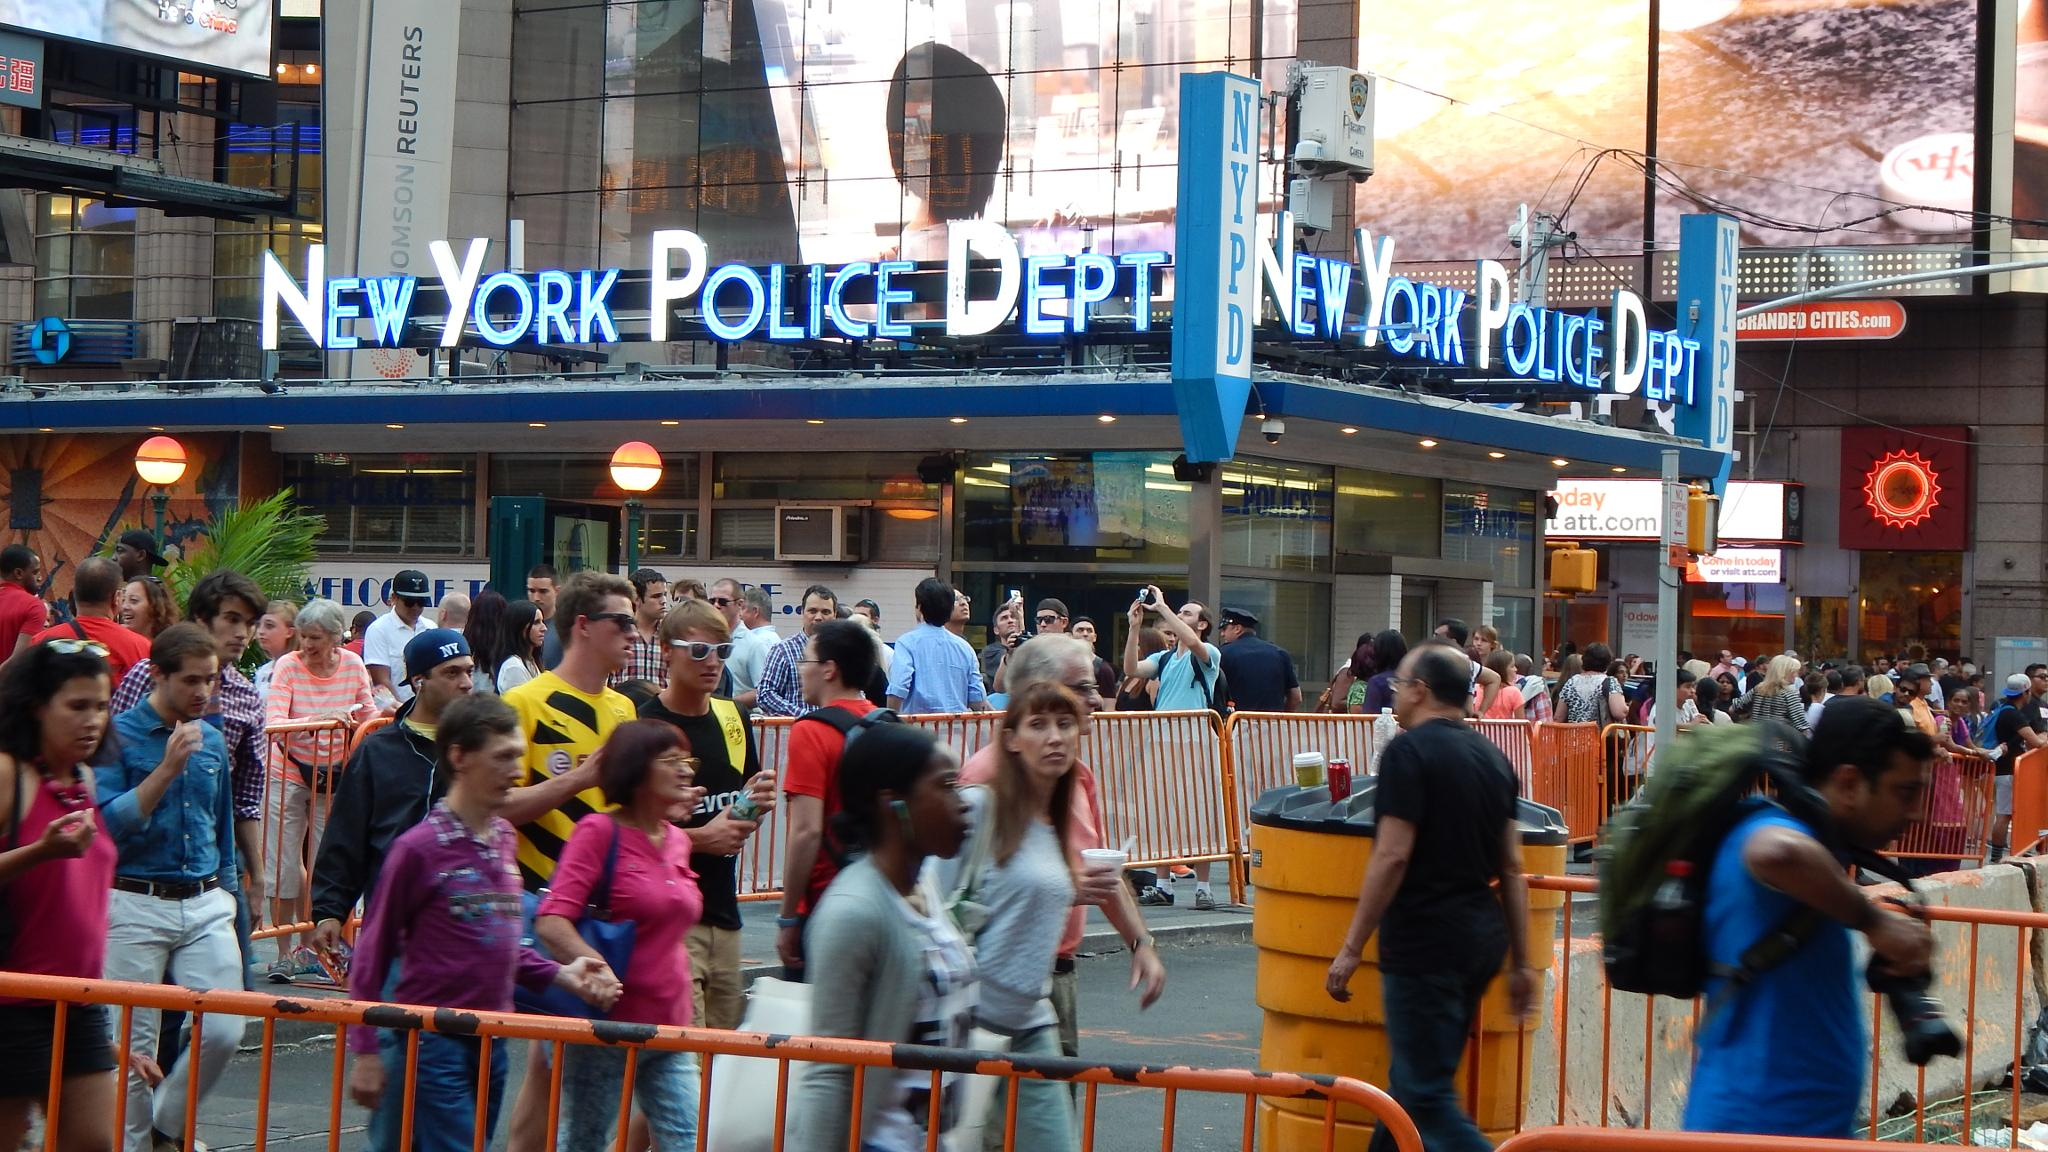 NYPD..in real life by rhonda.mccartney.5